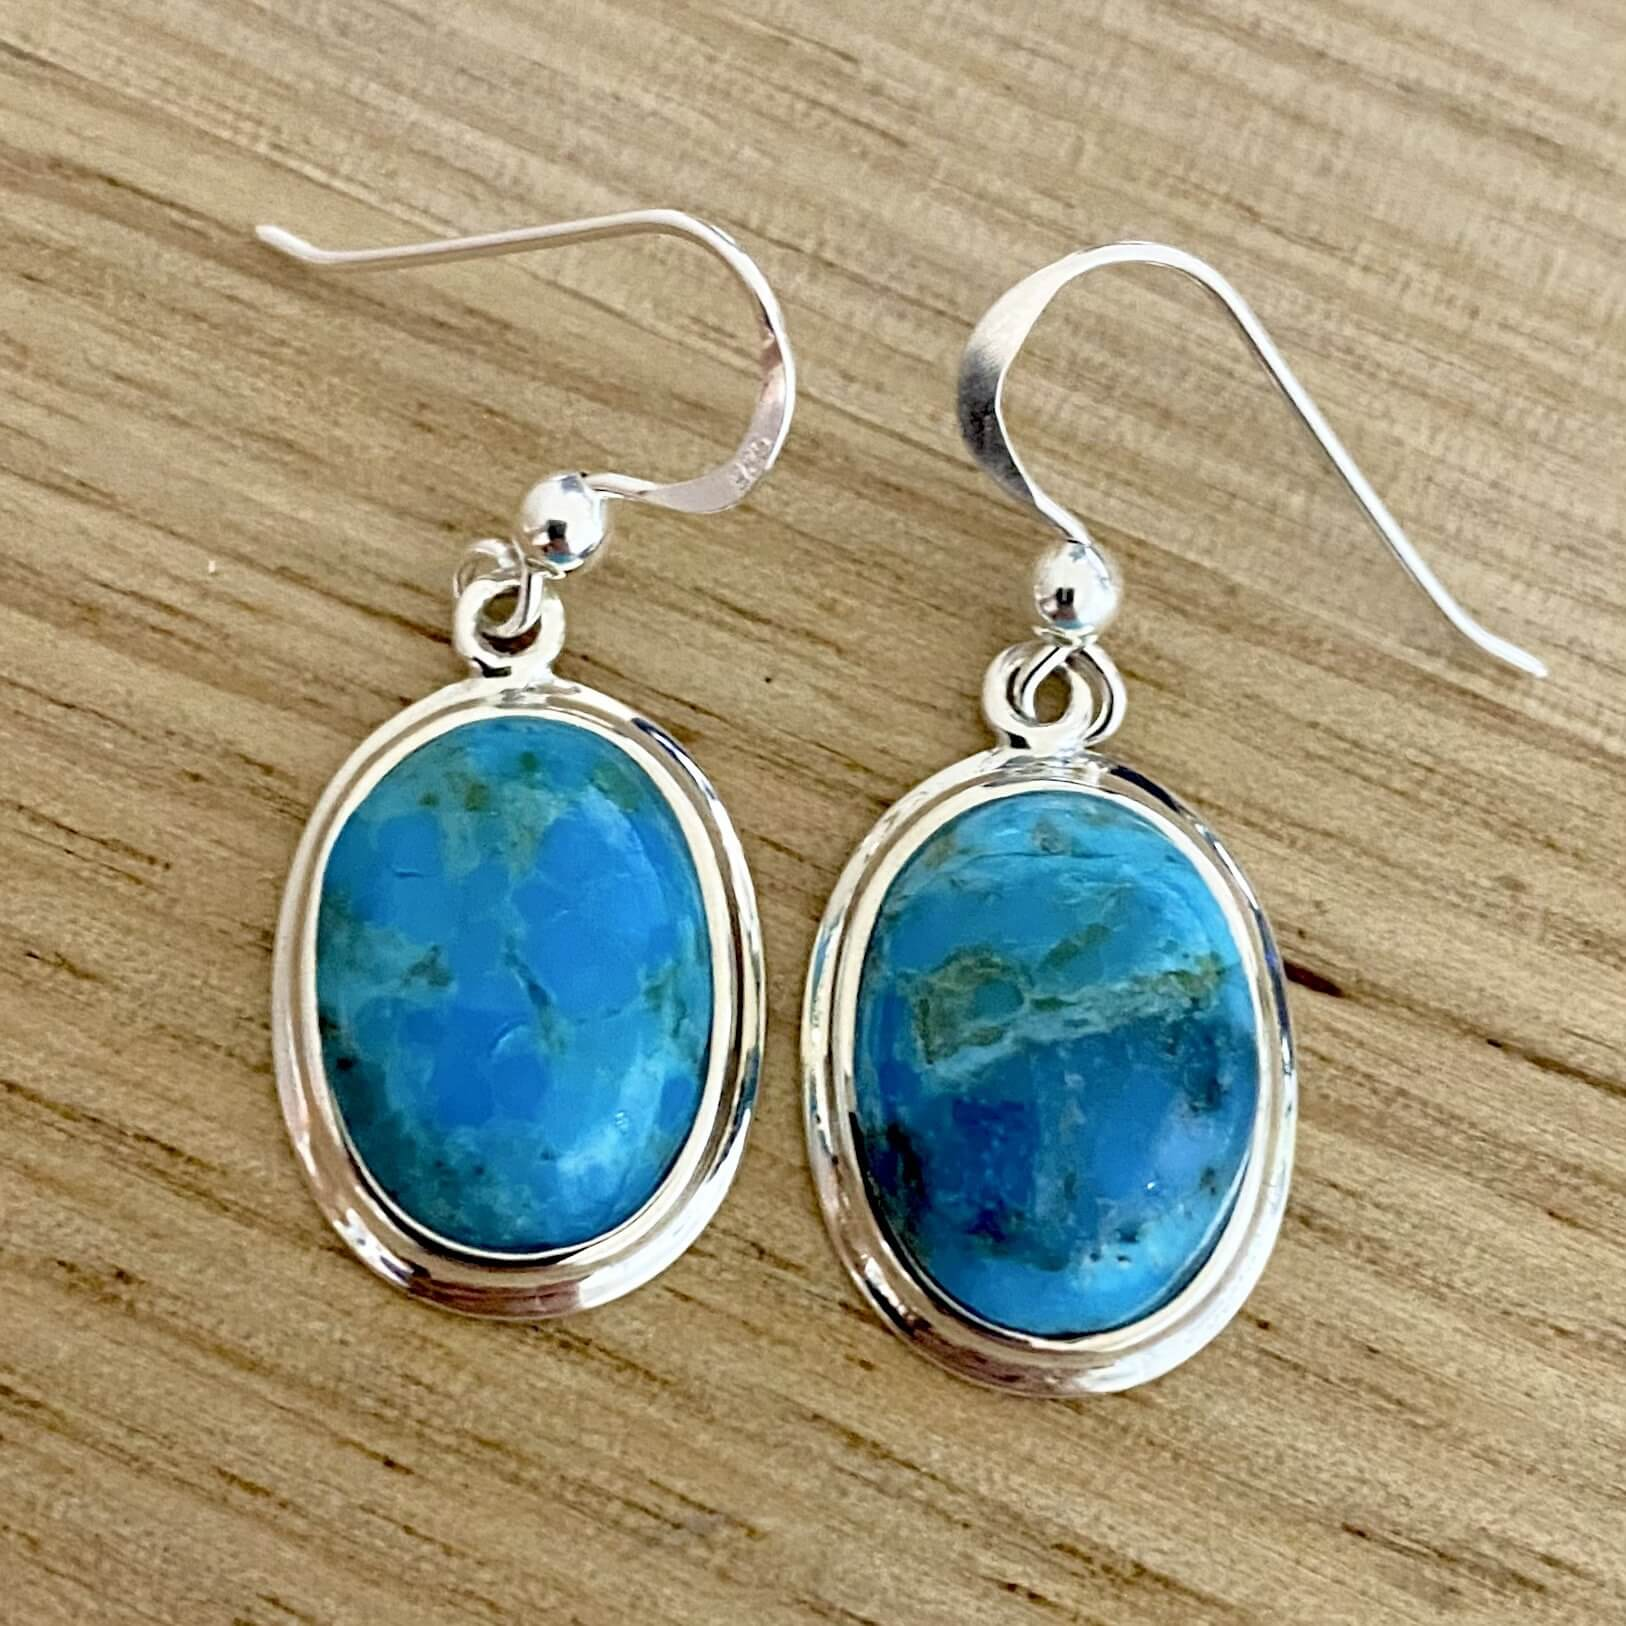 Laihas Classic Boho Sterling Silver Blue Turquoise Earrings - Laihas Bohemian Dreaming